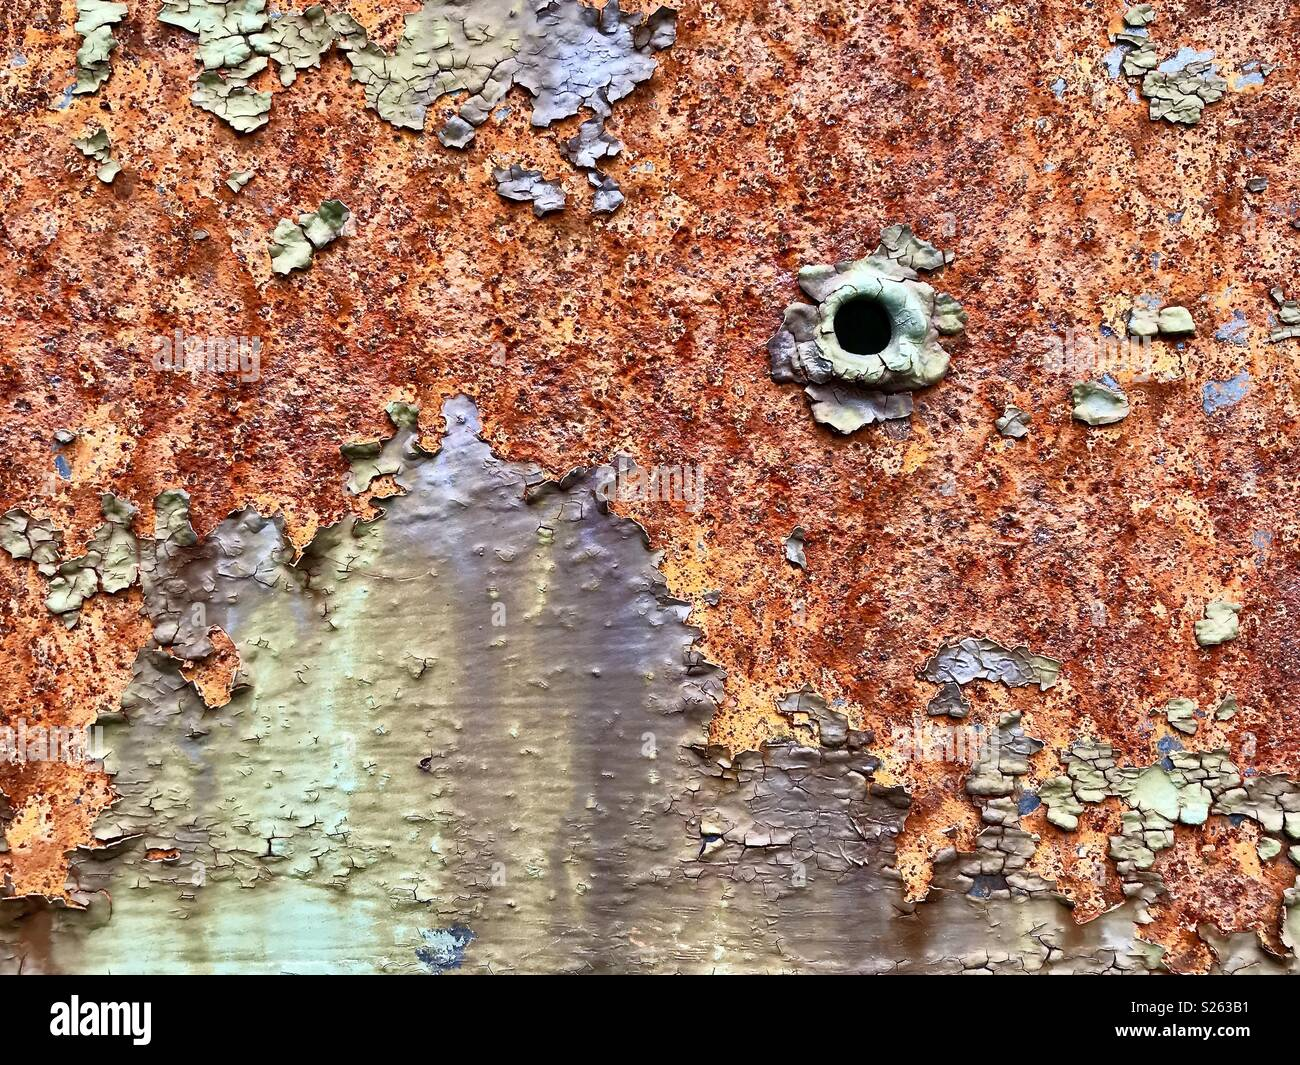 Bullet hole in rusty steel bridge beam in the Adirondack Mountains, NY wilderness - Stock Image